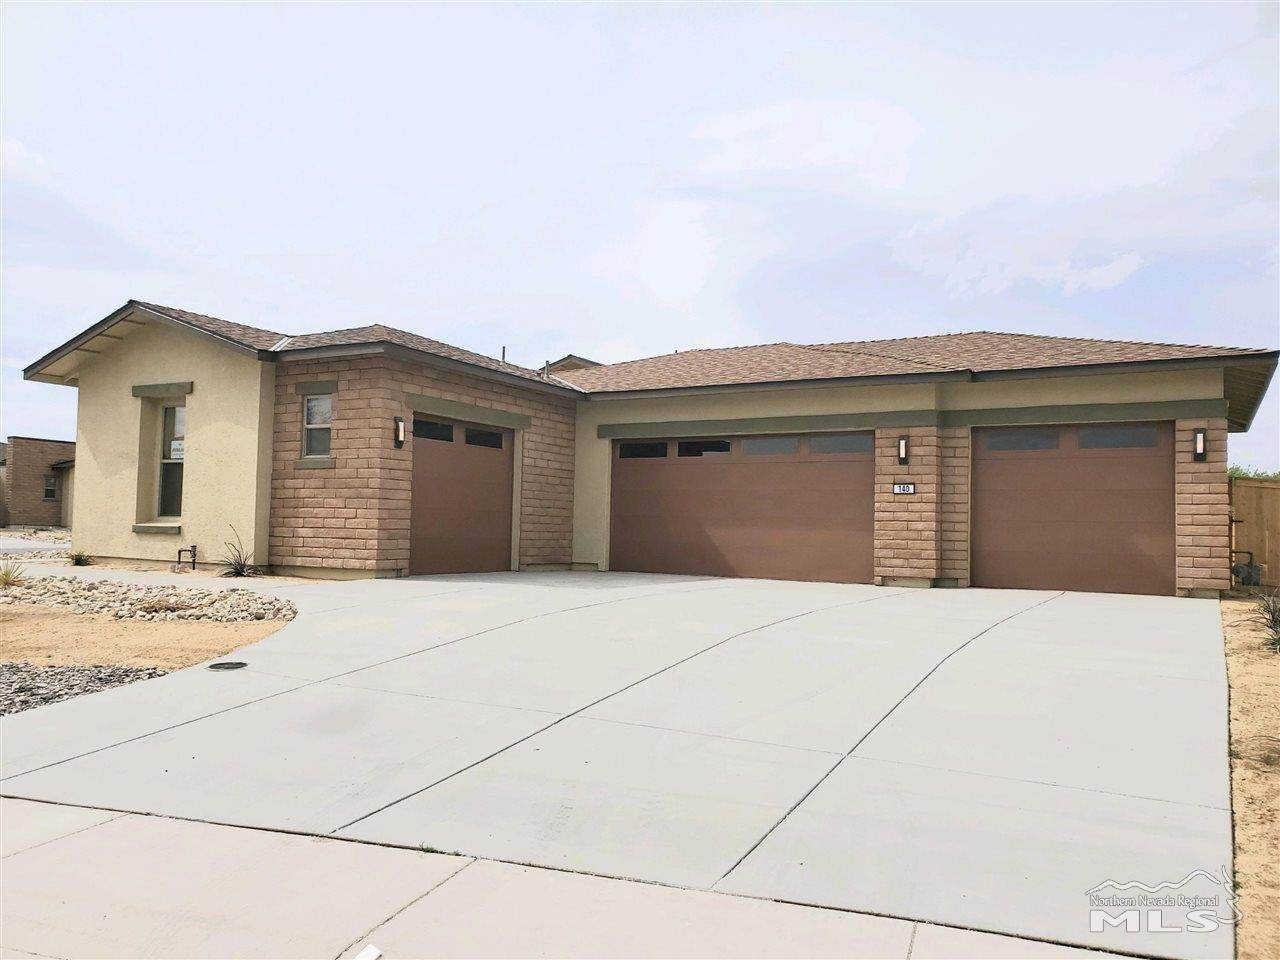 140 Snowy Plover Way - Photo 1